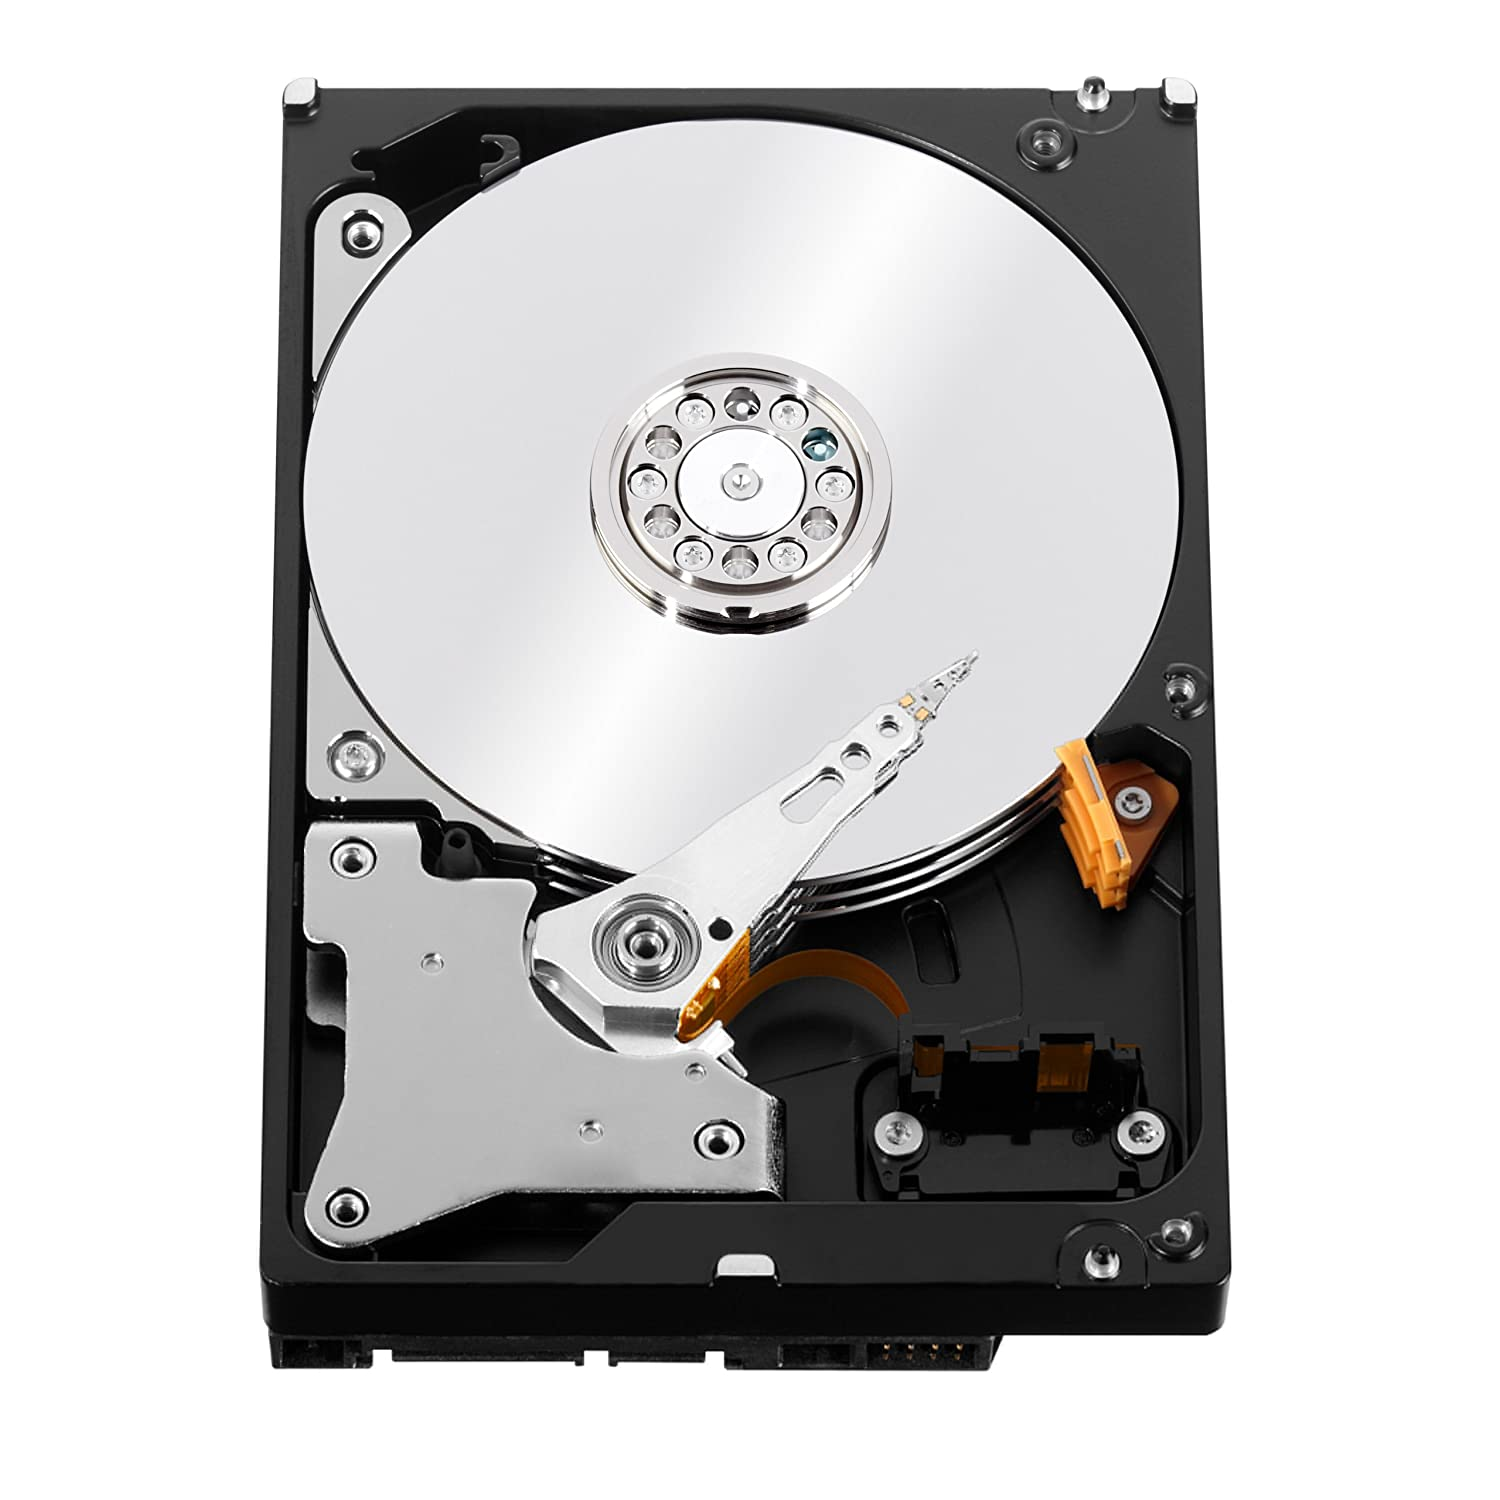 WD Red 3 TB NAS Hard Drive: 3.5 Inch, SATA III, 64 MB Cache &#8211; $139.99